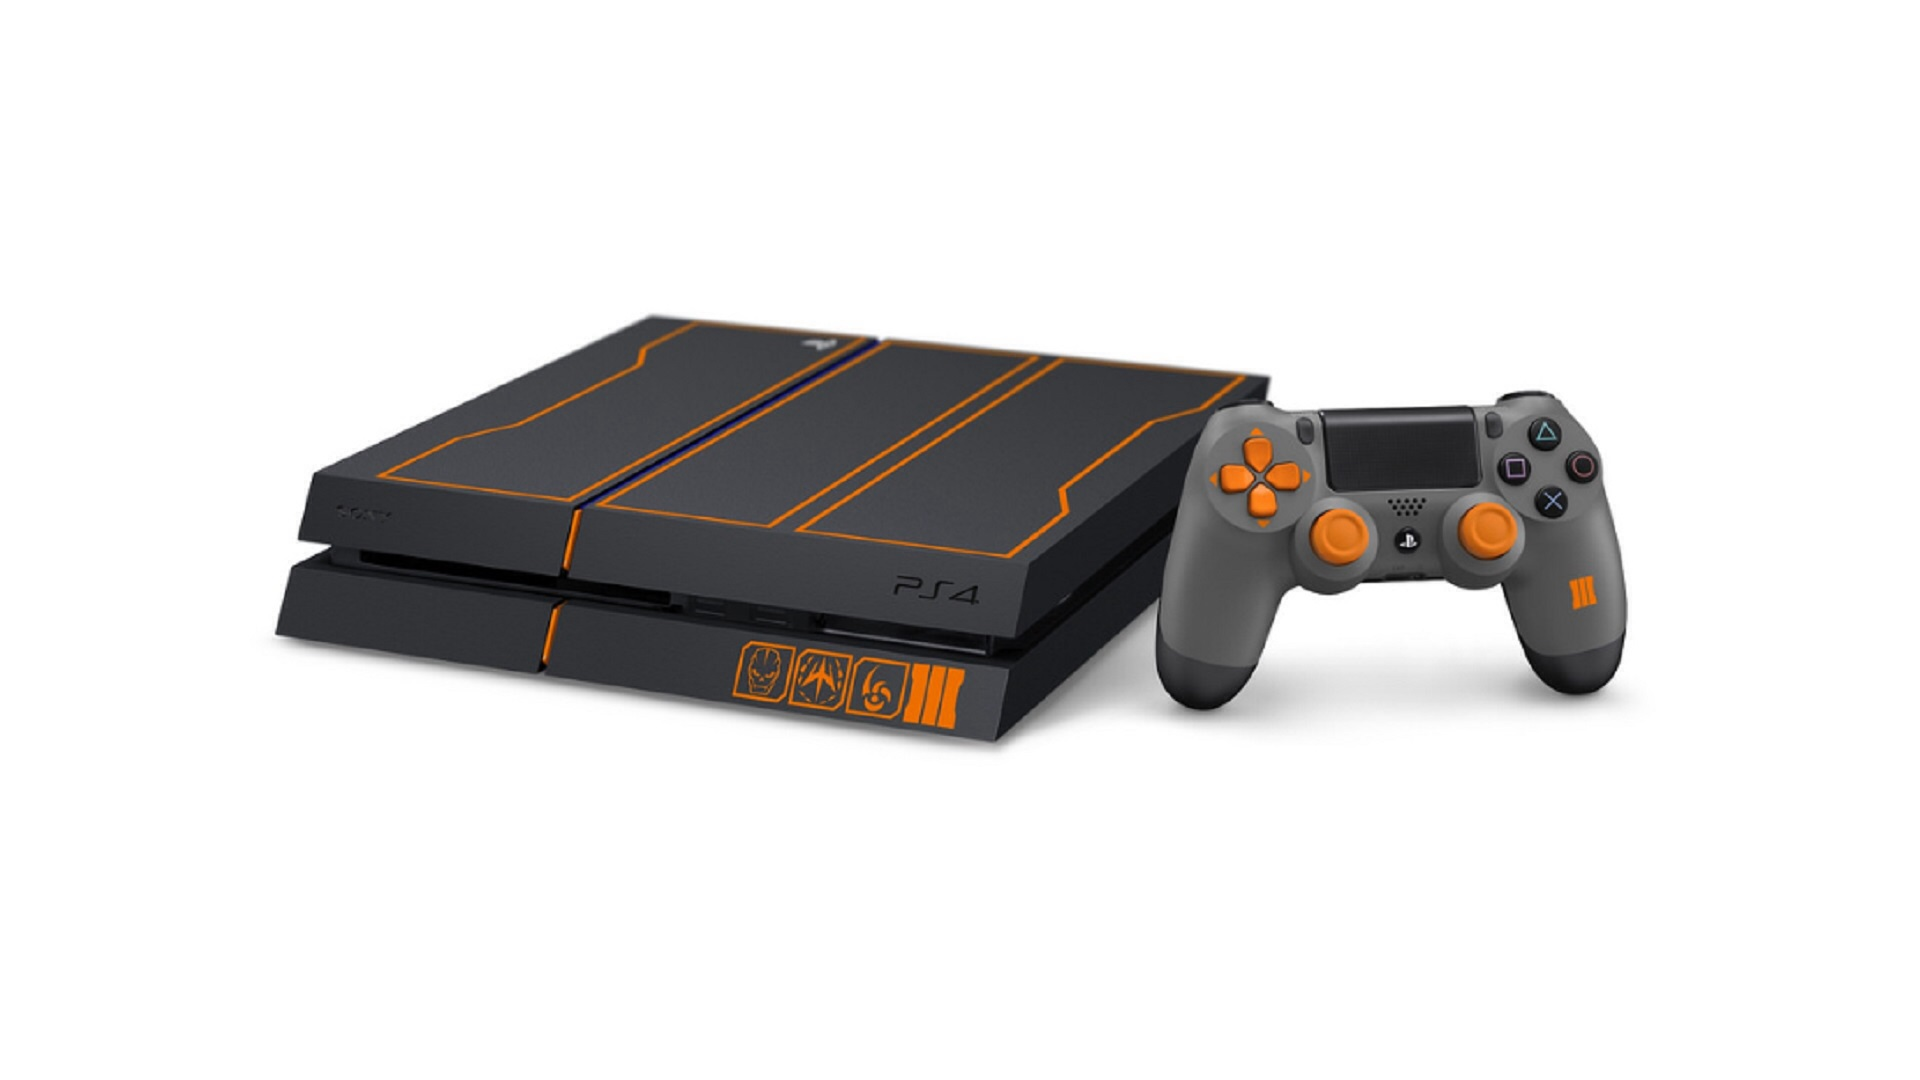 Photo of Sony Announces 1TB PS4 in New COD: Black Ops III Bundle